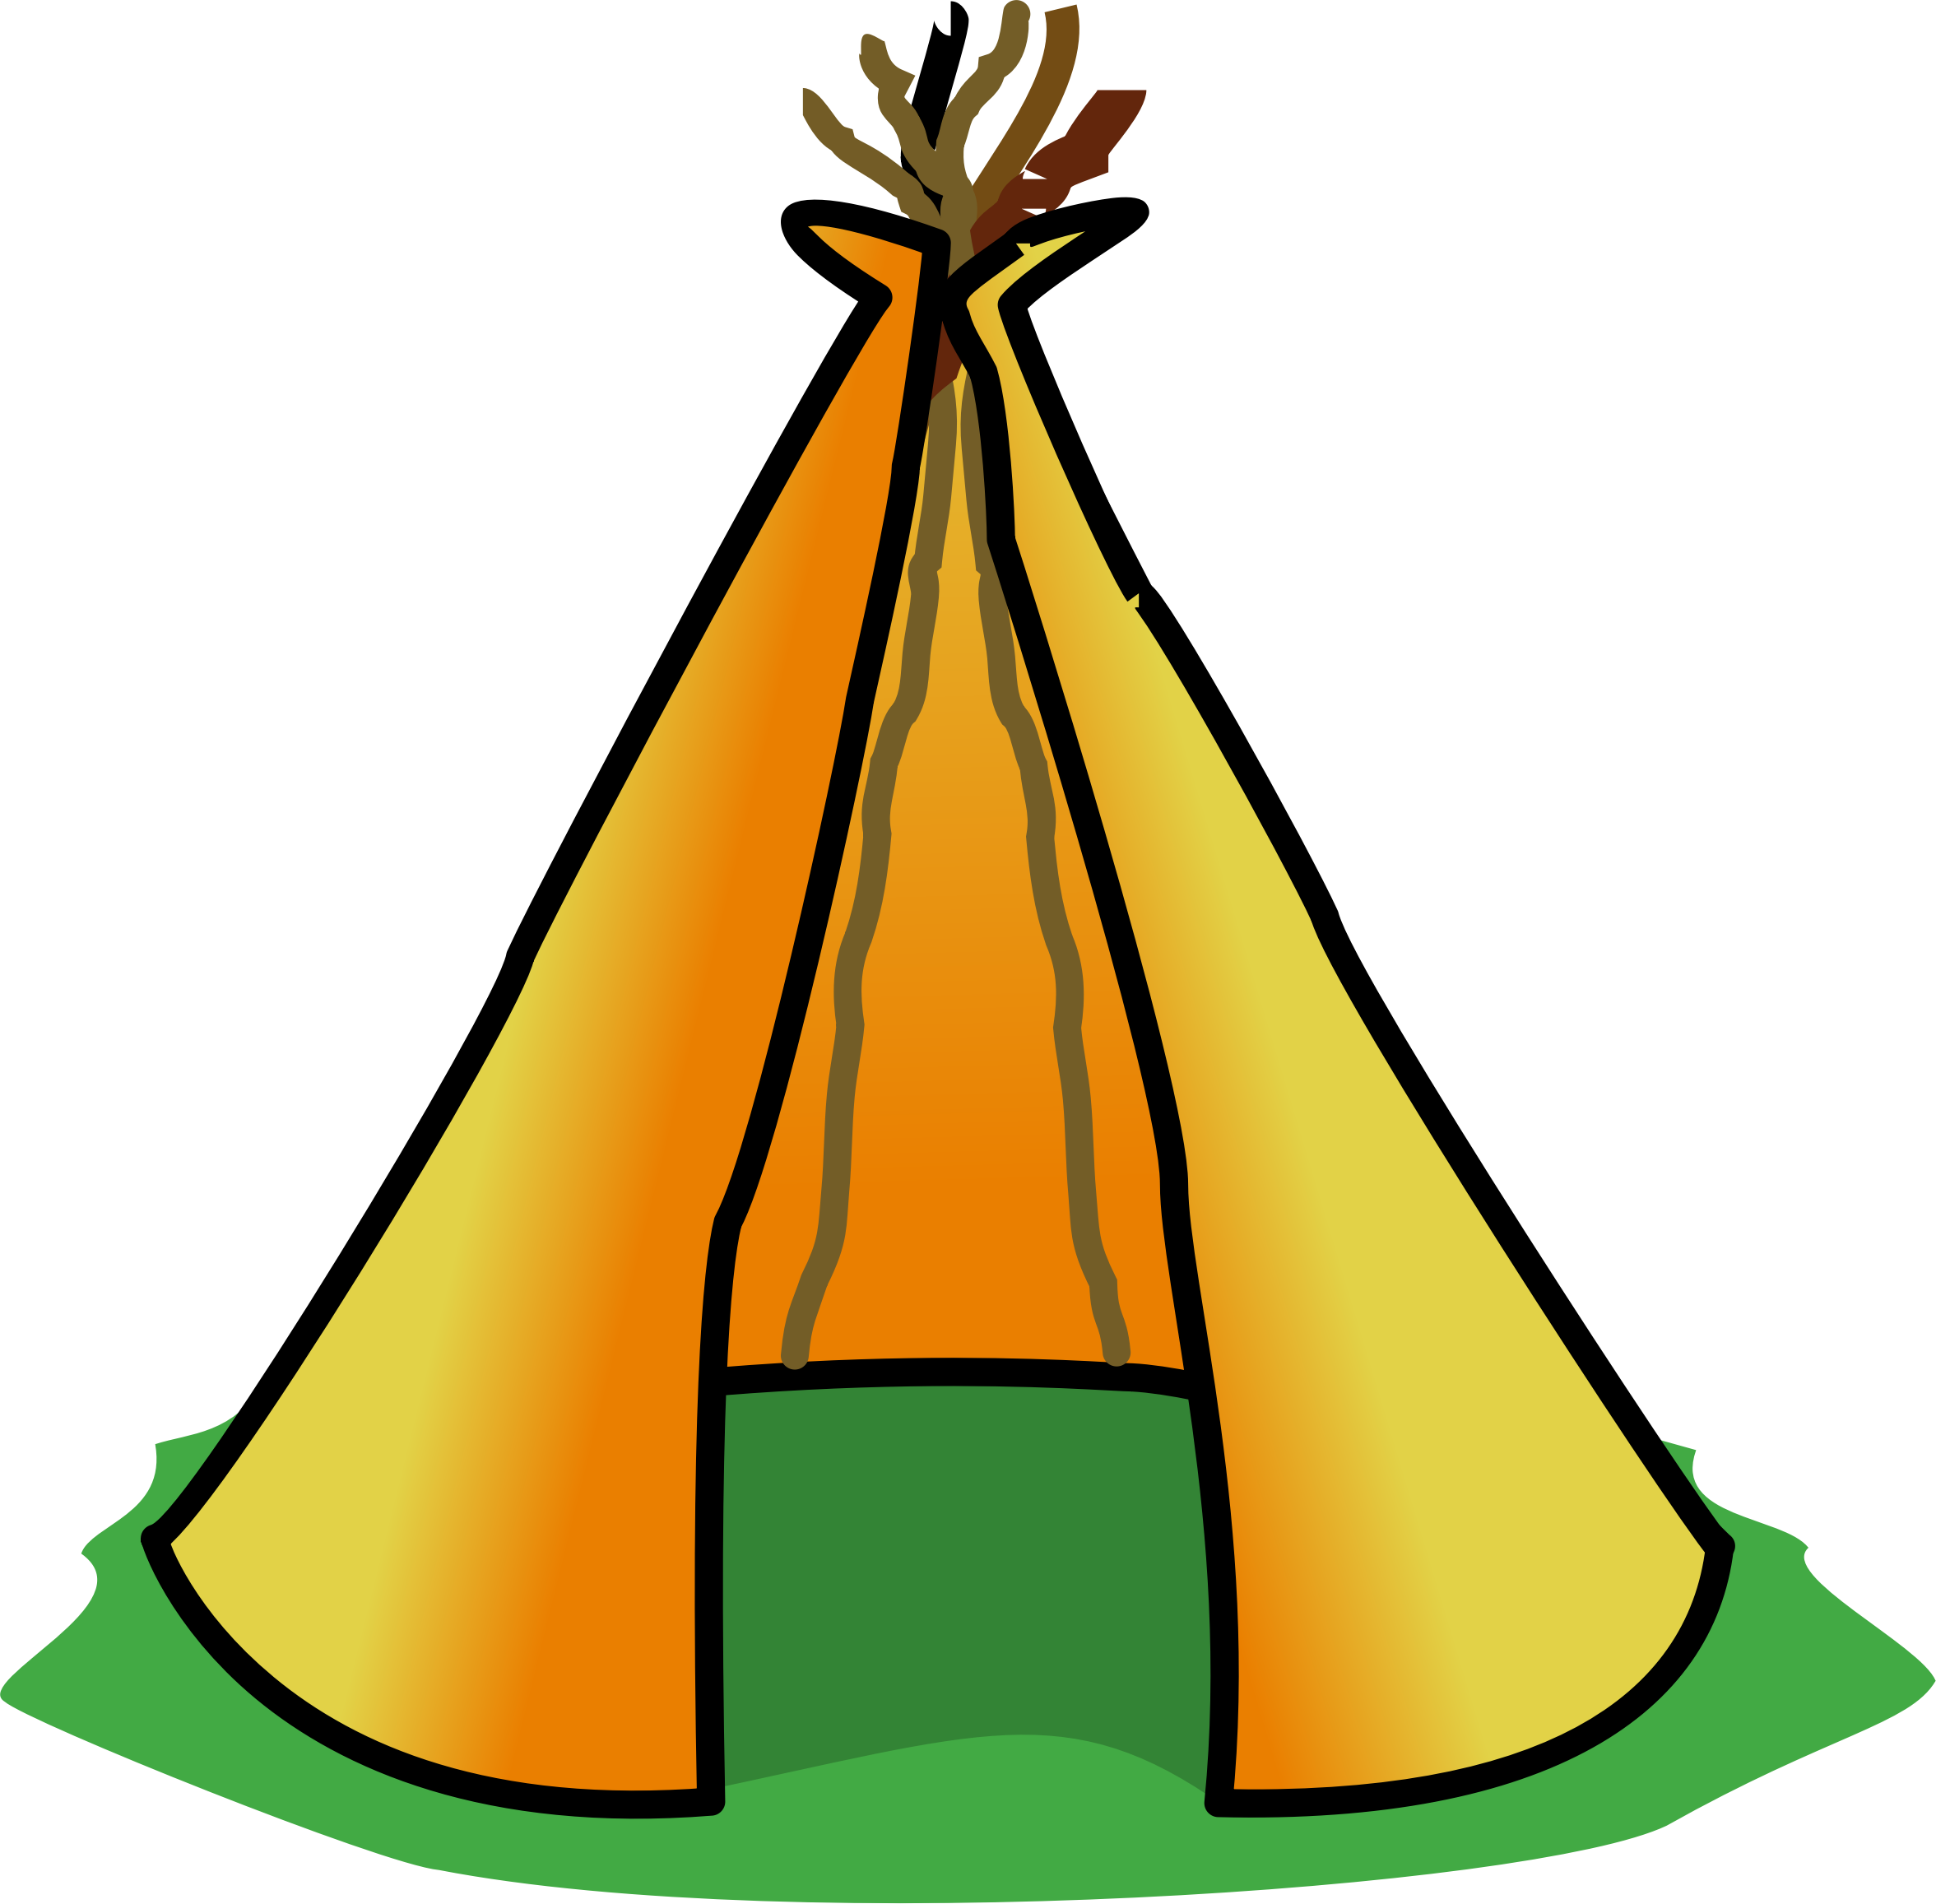 Indian hut clipart graphic black and white Teepee Clipart | Free download best Teepee Clipart on ClipArtMag.com graphic black and white